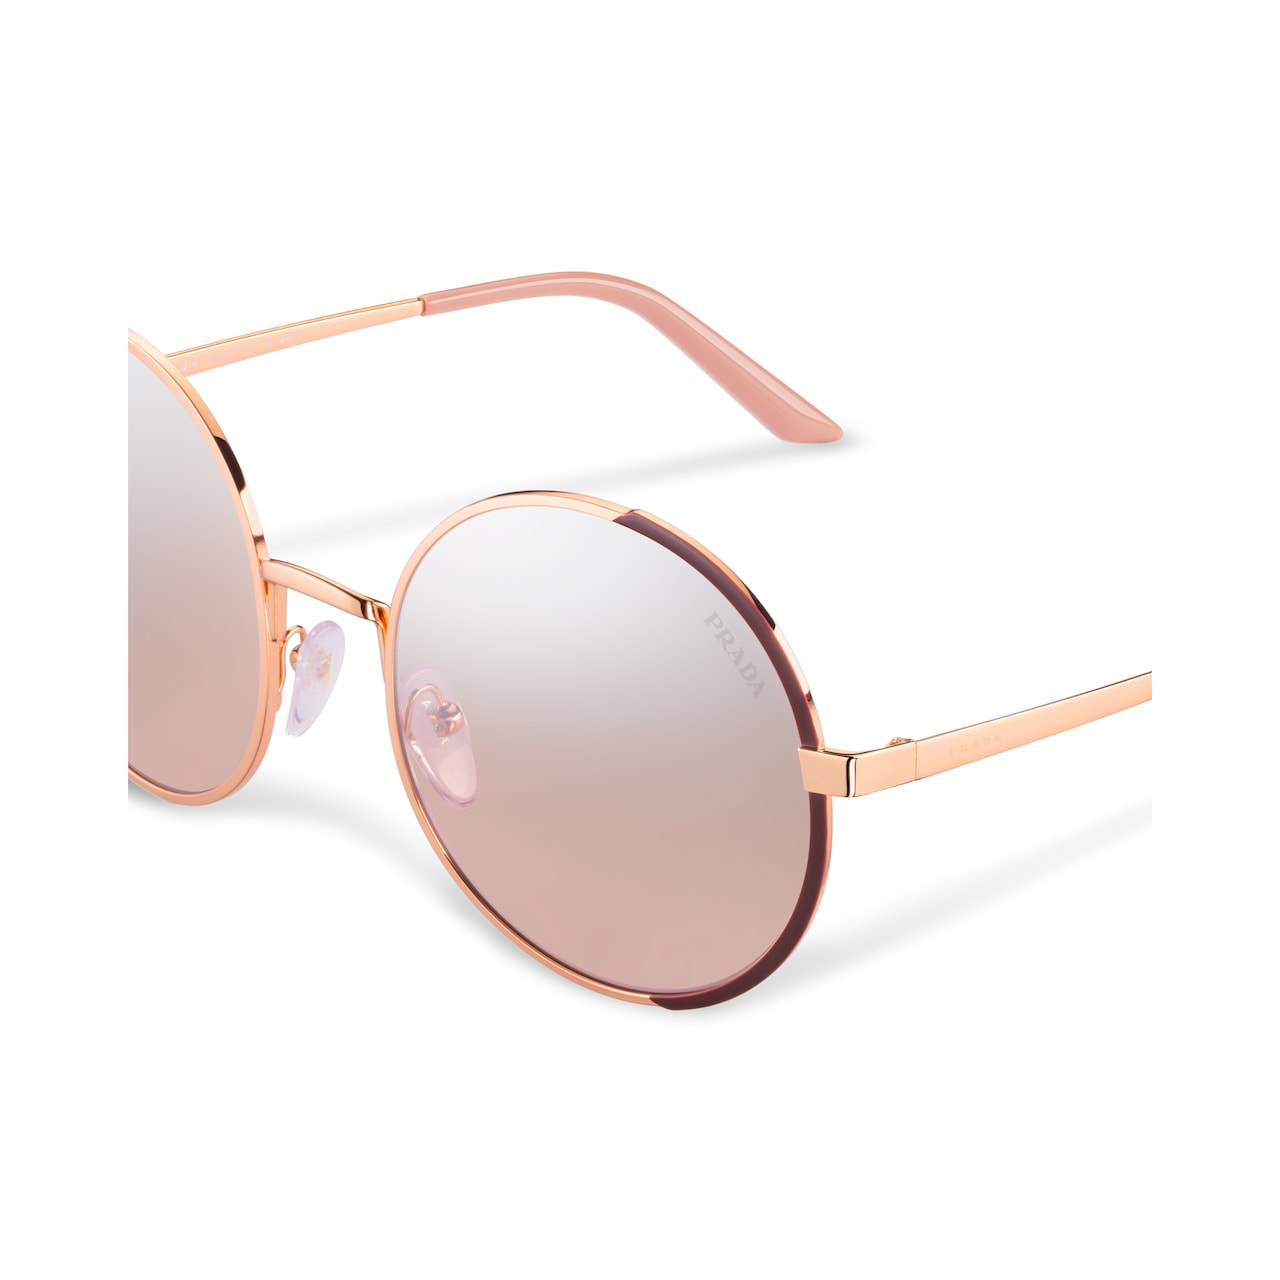 Prada Prada Eyewear Collection sunglasses 5